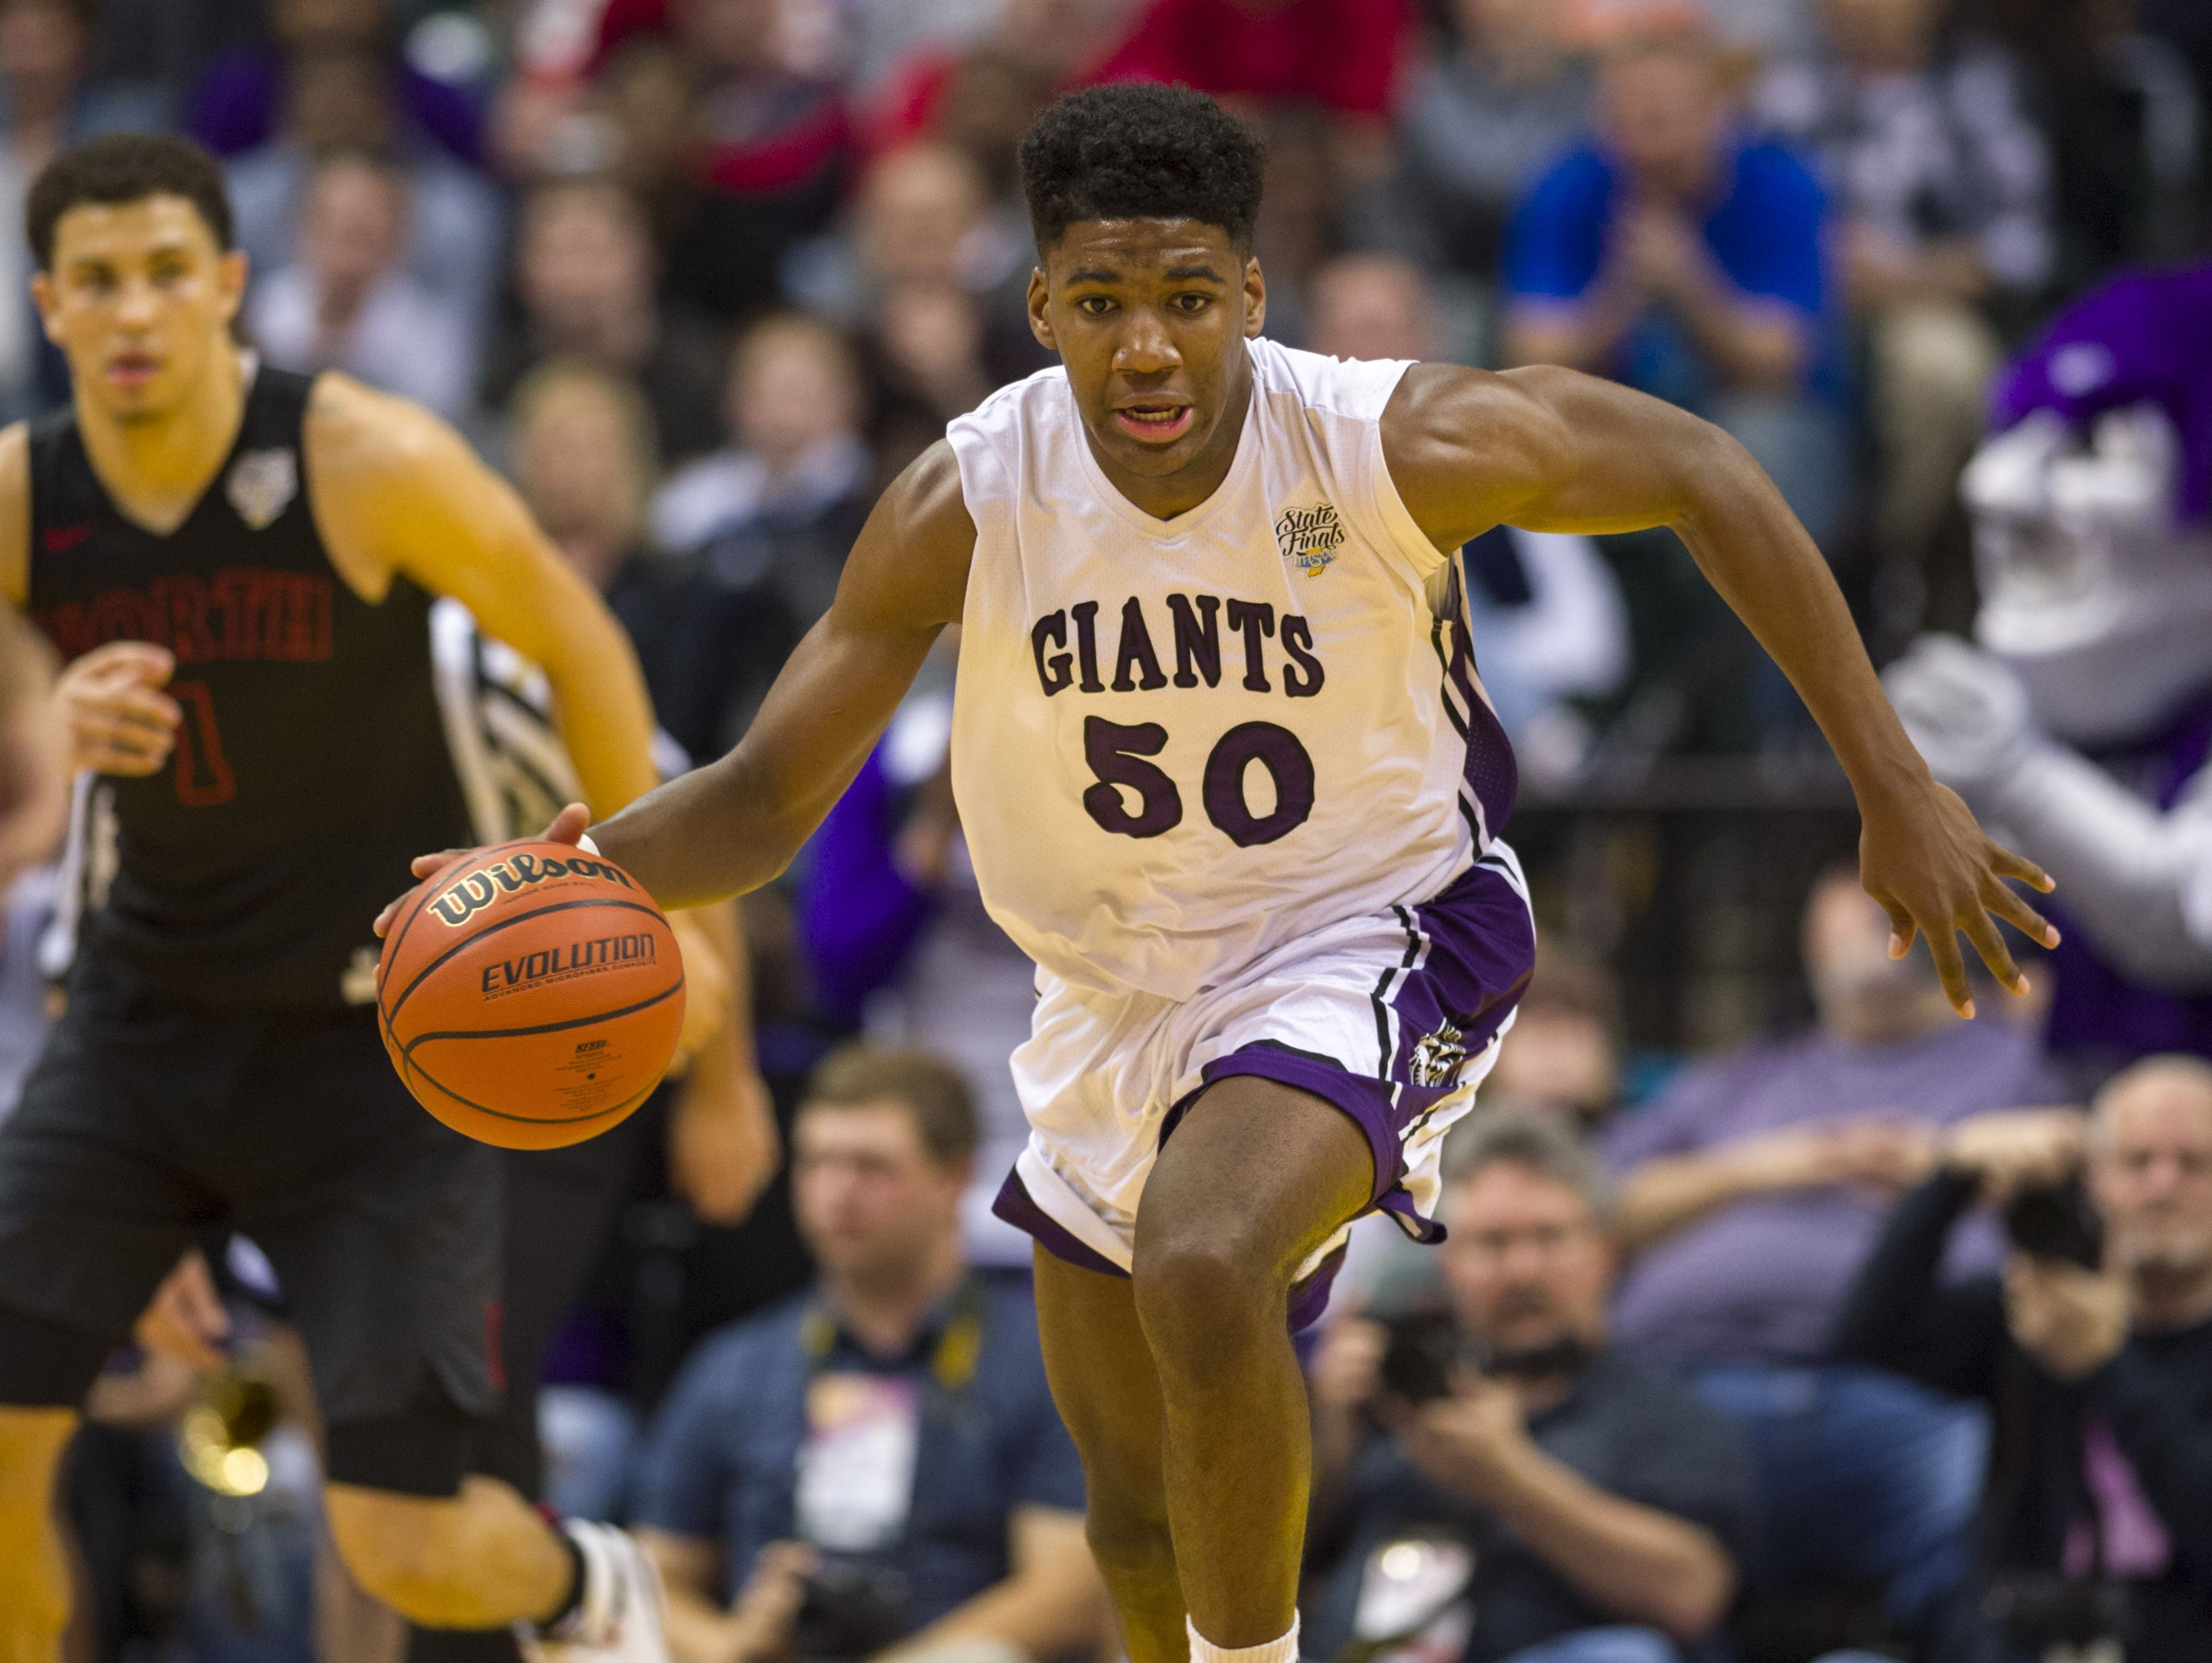 Ben Davis High School junior Aaron Henry (50) races the ball up court during the first half of the IHSAA 2017 Class 4A State Championship Game at Banker's Life Fieldhouse in Indianapolis, Saturday, March 25, 2017.